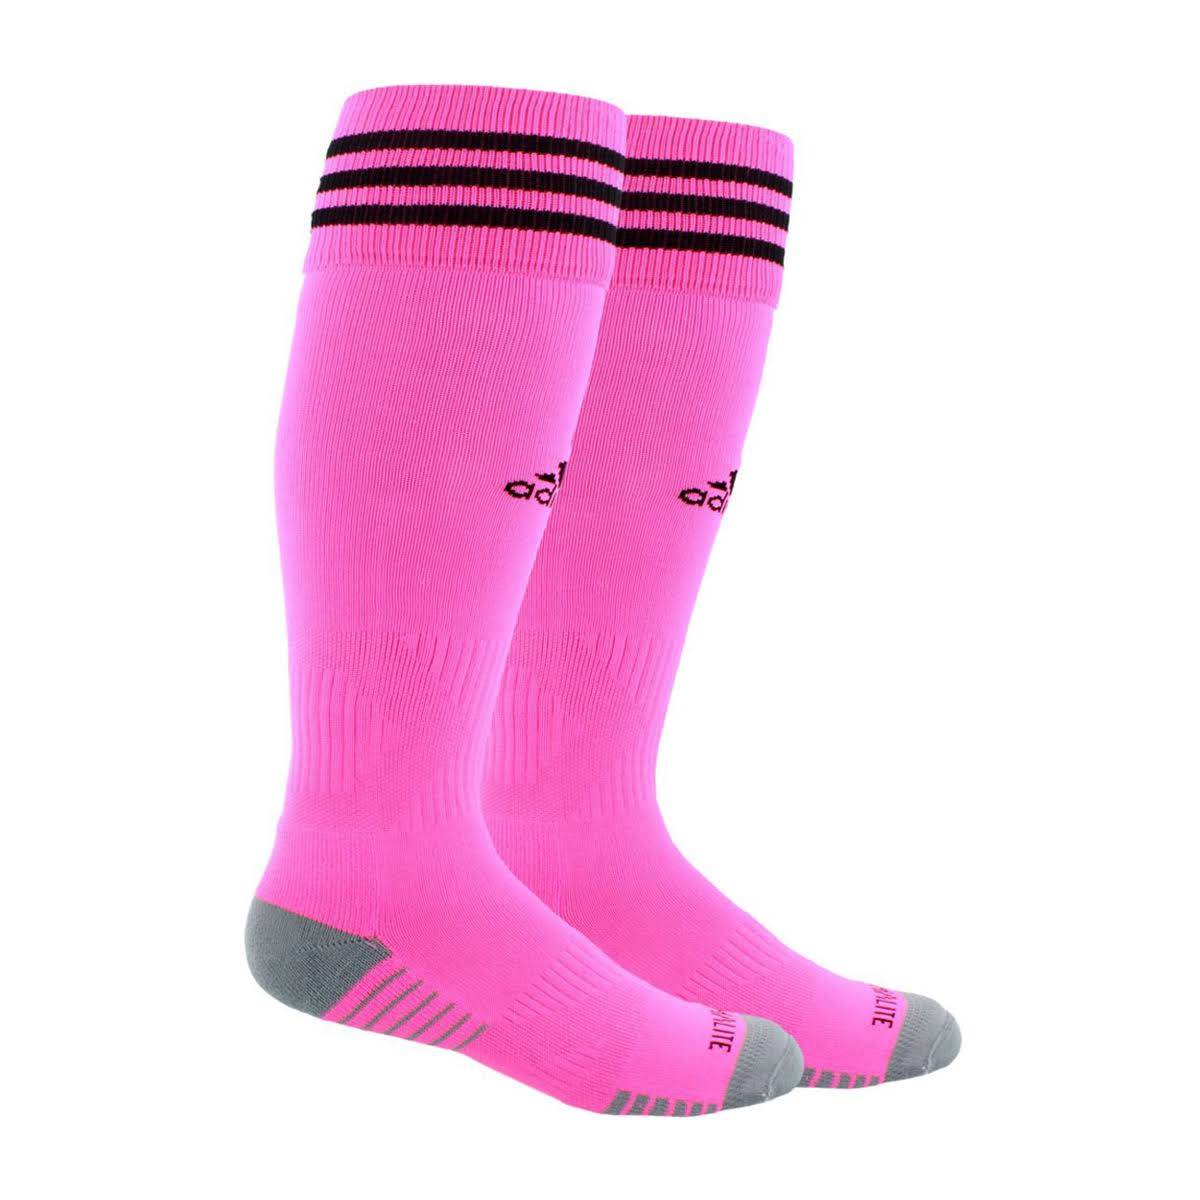 Adidas Copa Zone Cushion IV Socks - Pink/Black - S